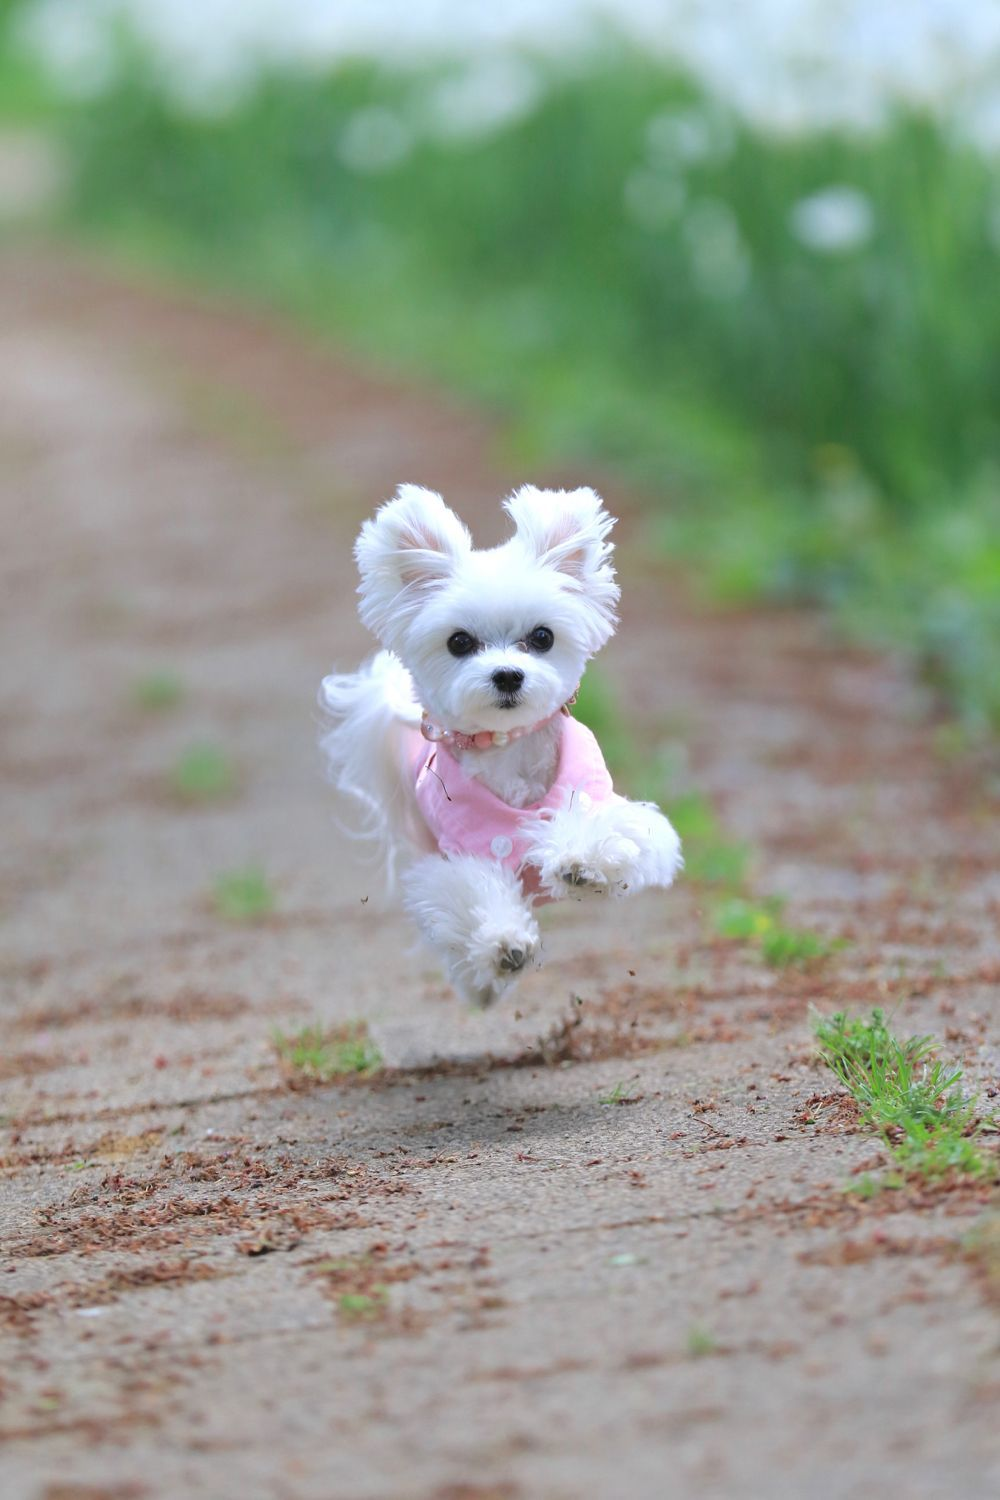 Maltese Puppy Running Adorable Dog Ears Flying So Sweet Cute